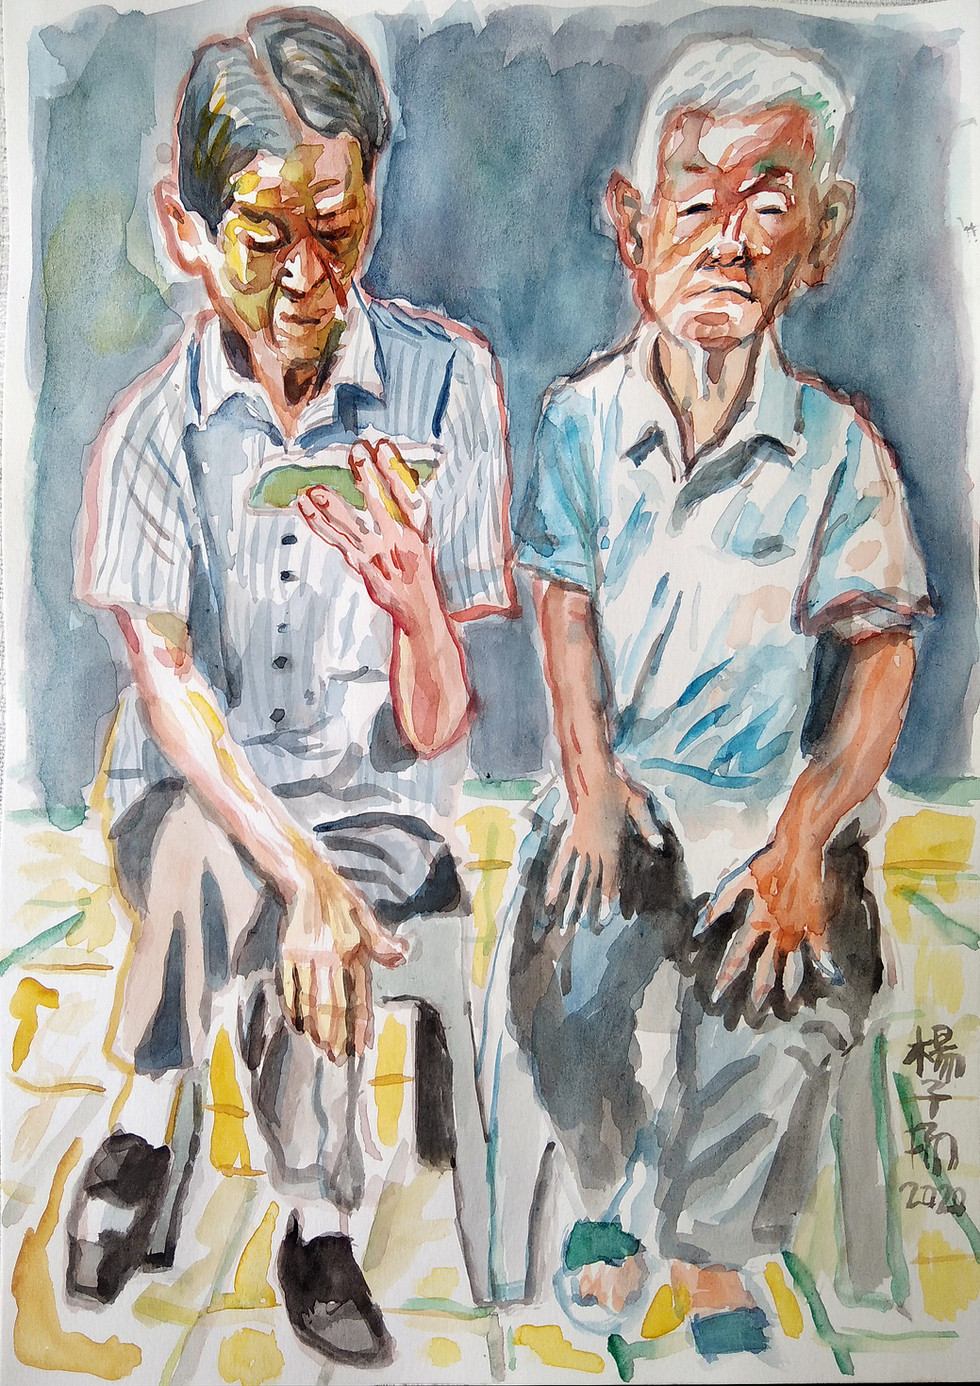 Two Old Men, 2020, Watercolour on paper, 29.7 x 21cm